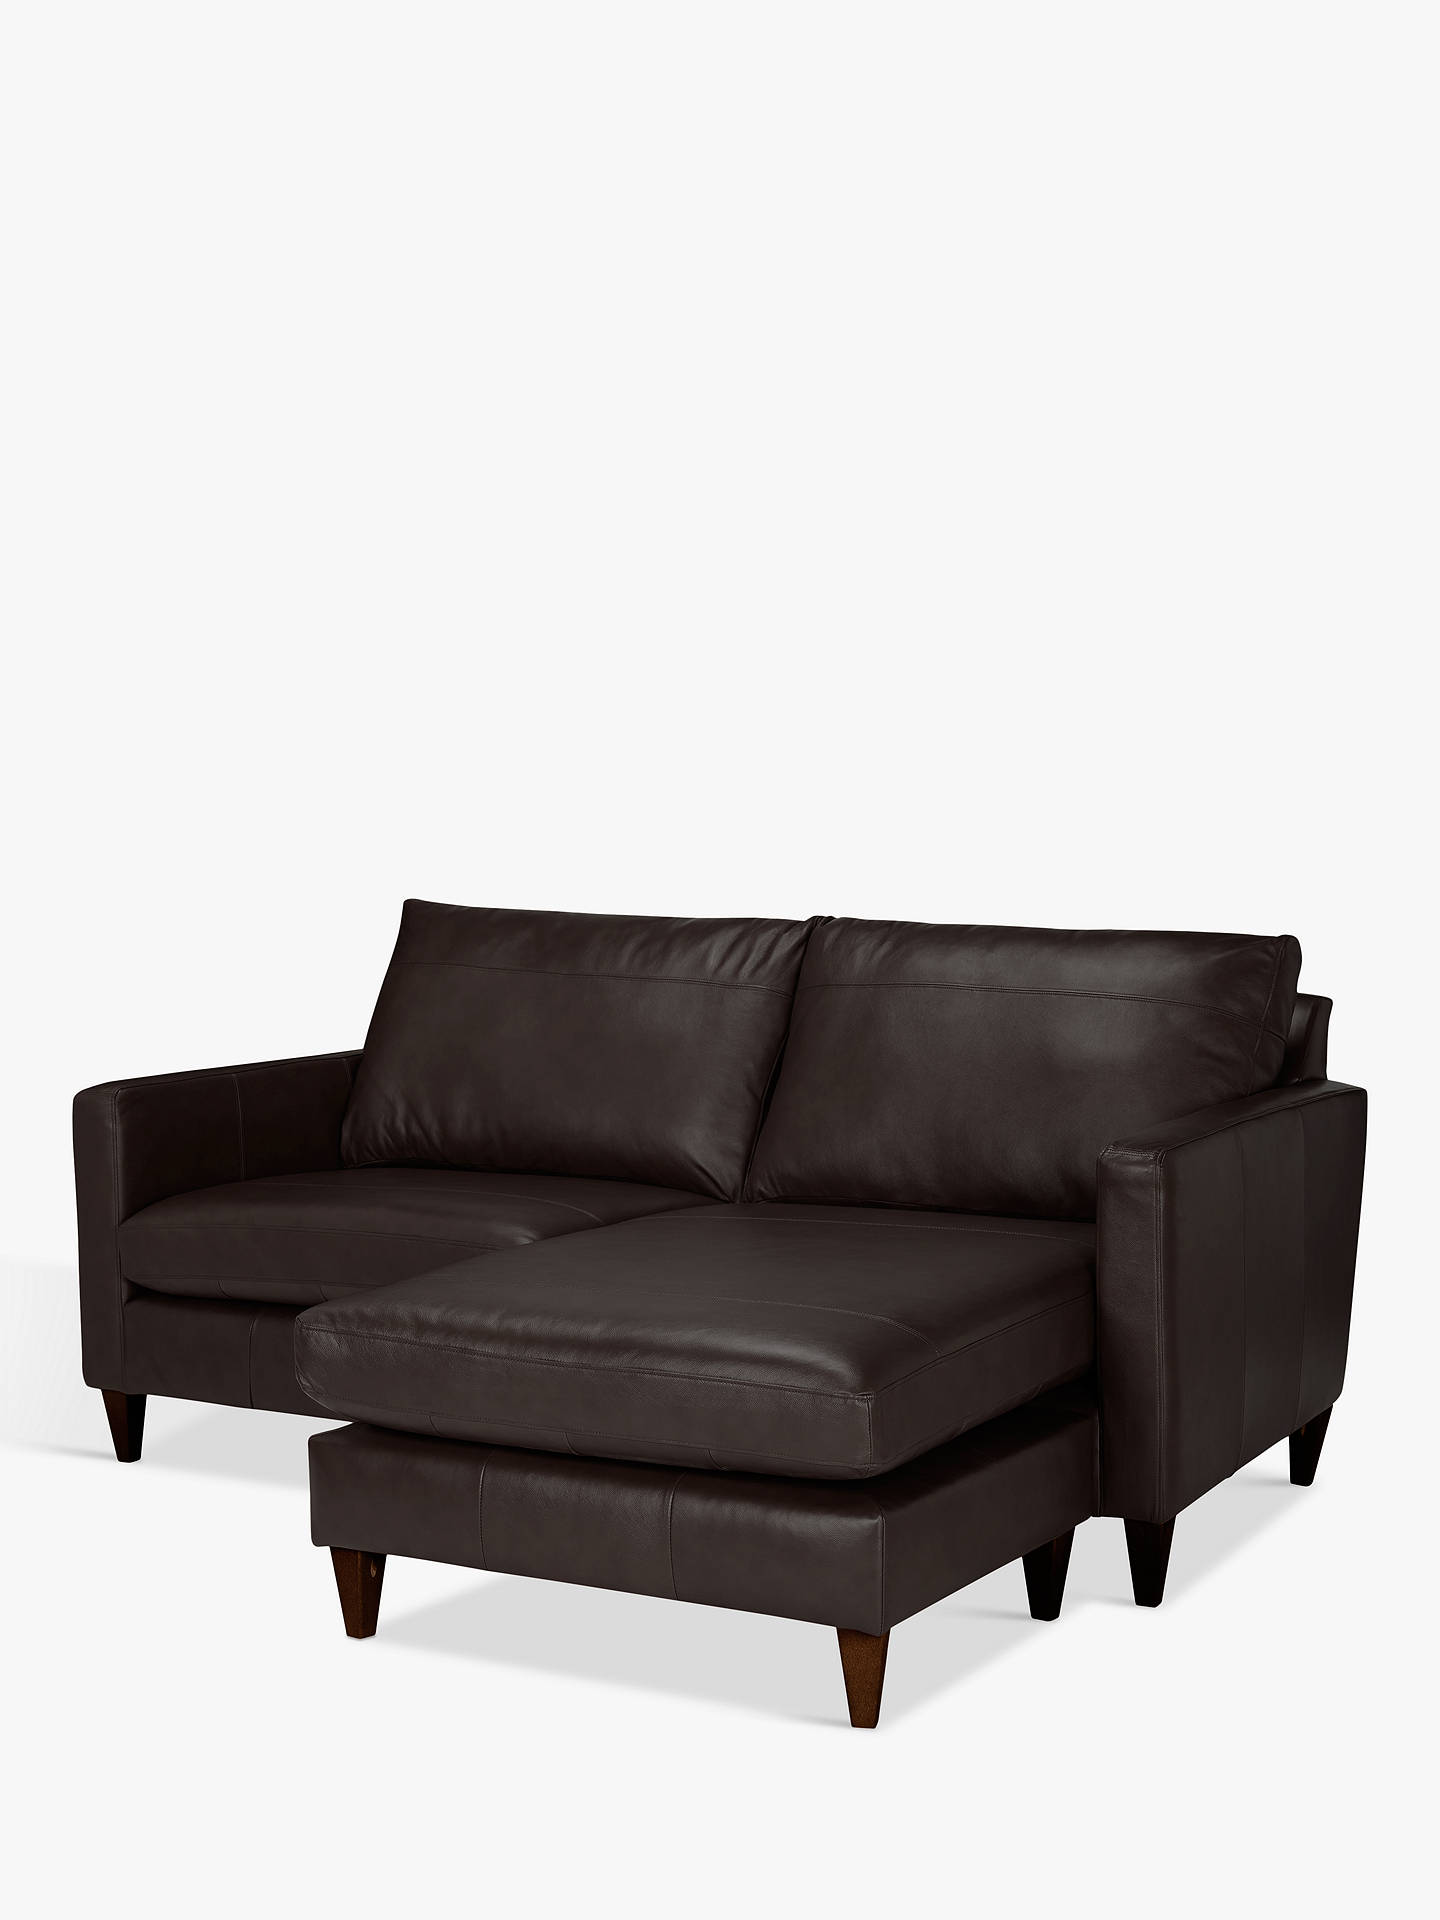 BuyJohn Lewis & Partners Bailey Leather RHF Chaise End Sofa, Dark Leg, Demetra Charcoal Online at johnlewis.com